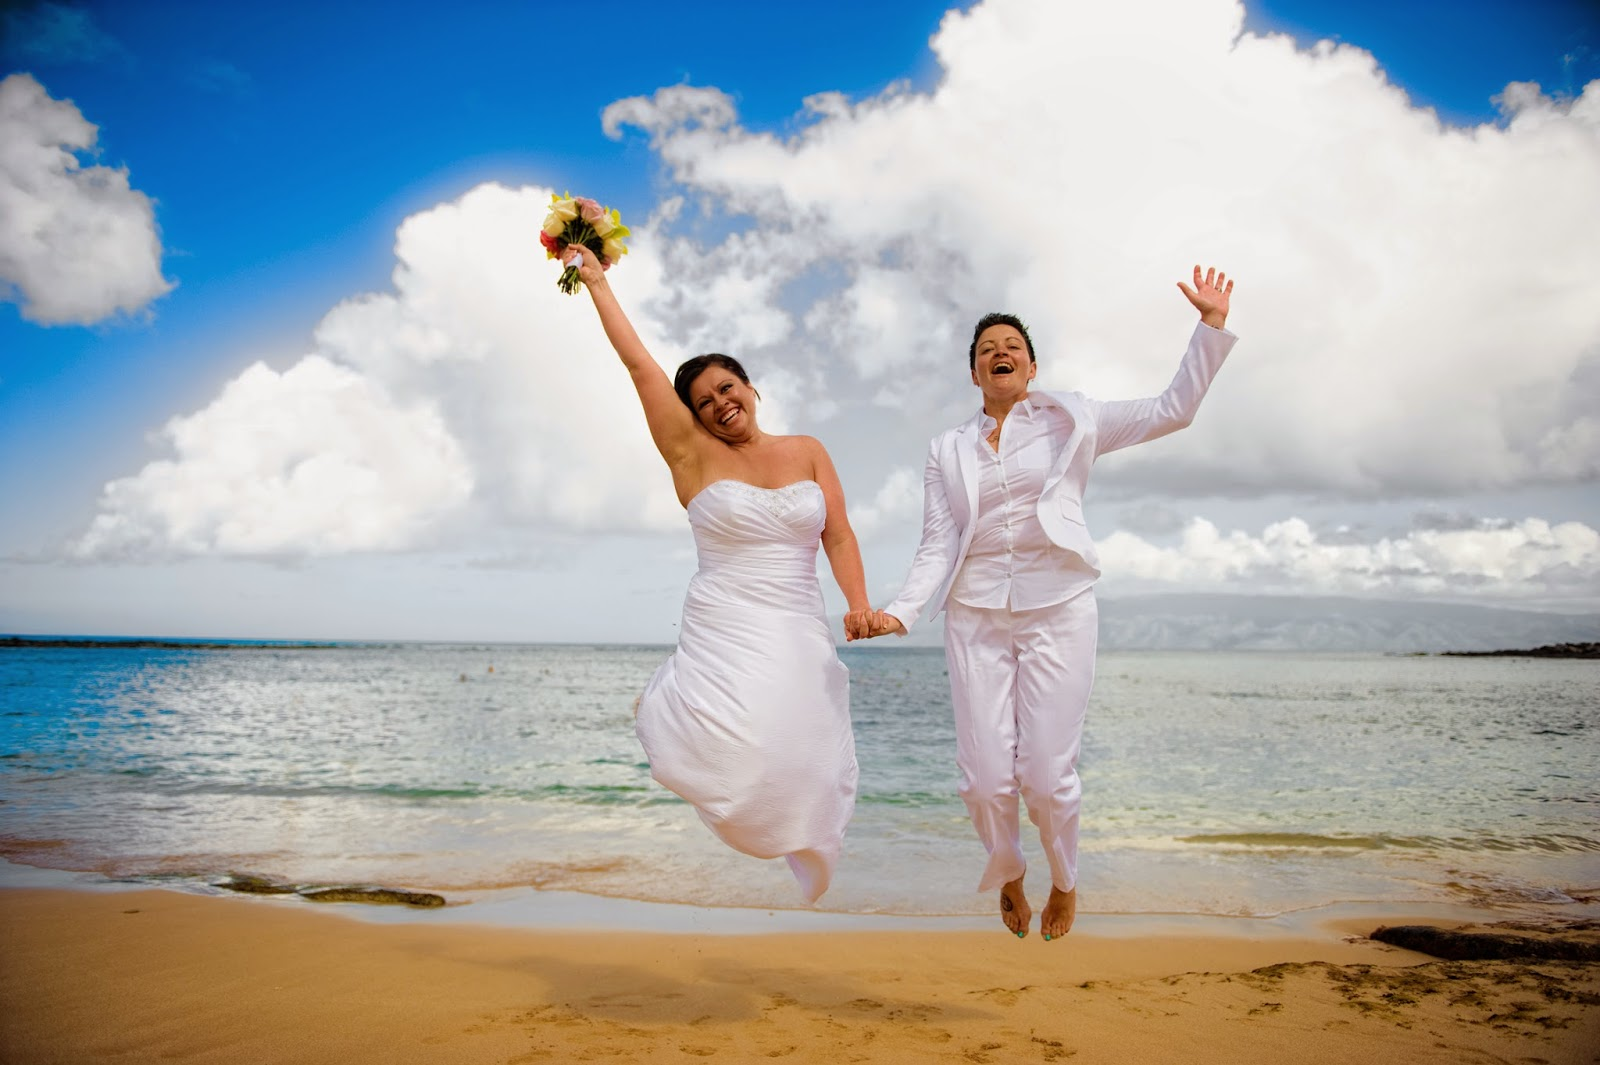 maui gay weddings, maui gay wedding planners, maui gay wedding photographers